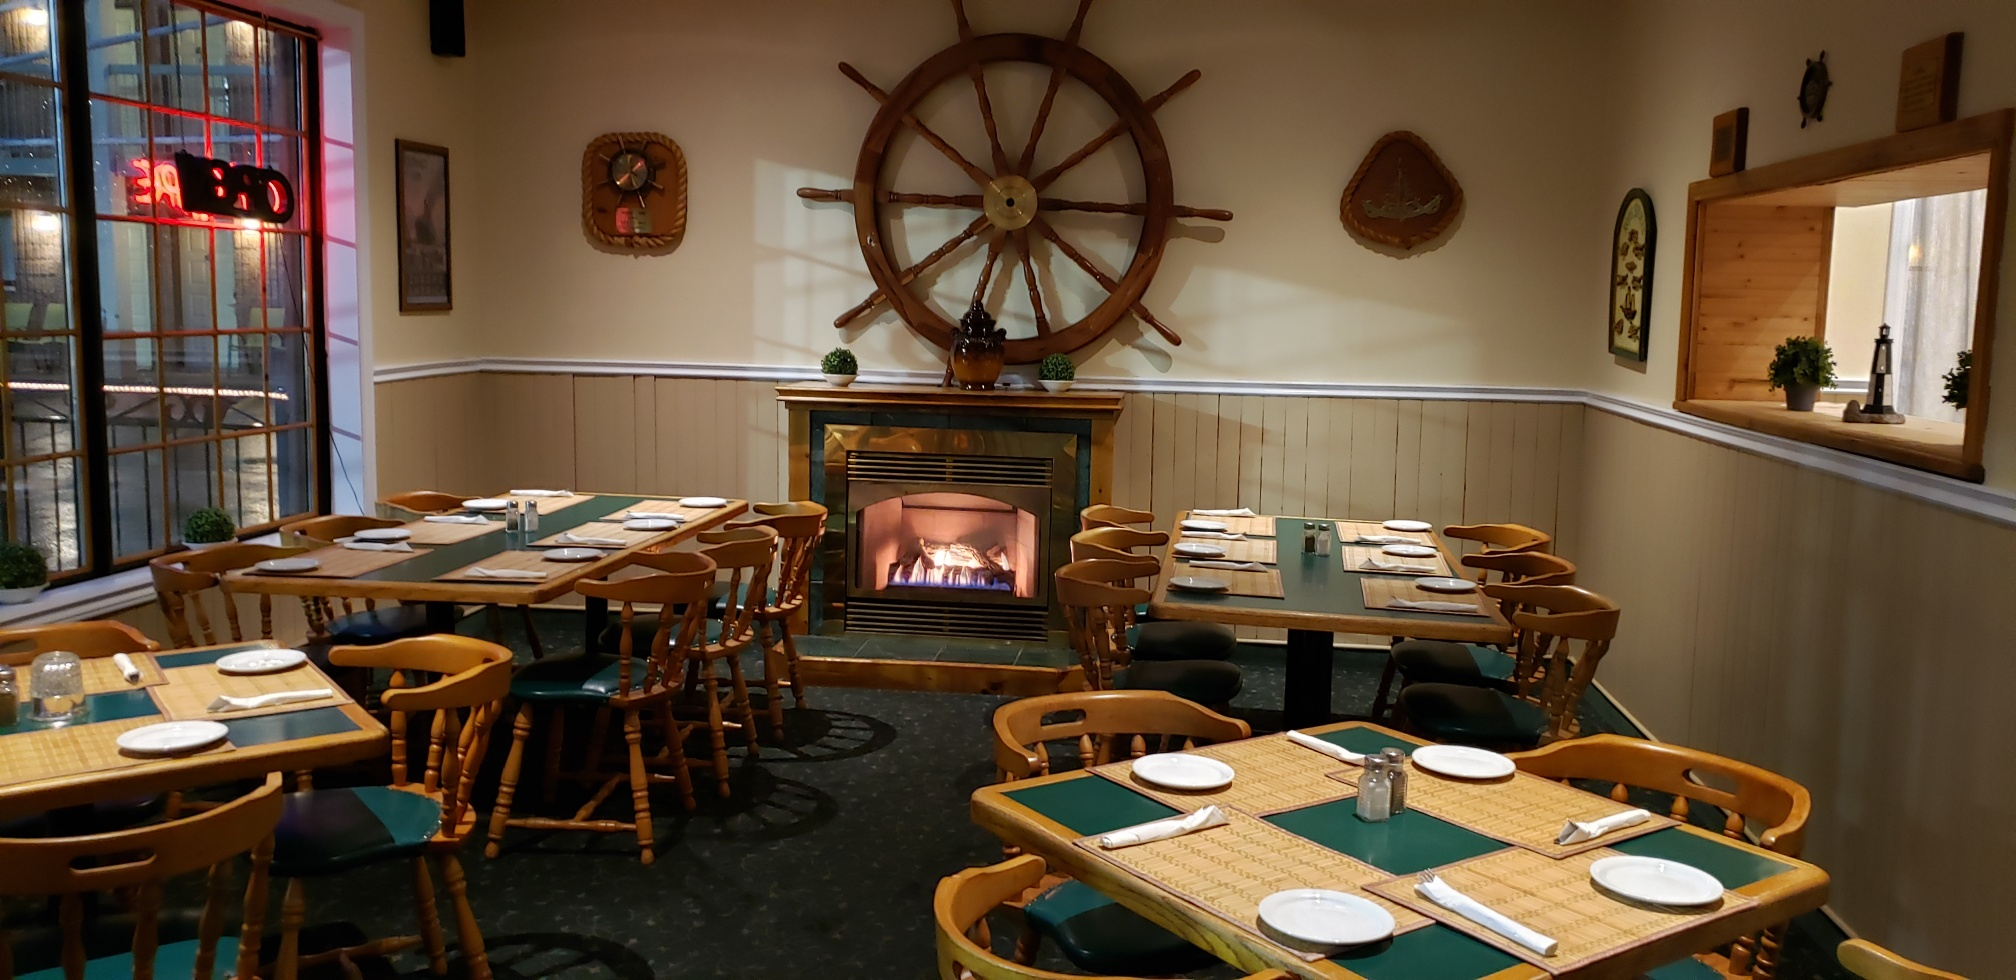 Wheel And Anchor Restaurant and Bar Featured Image